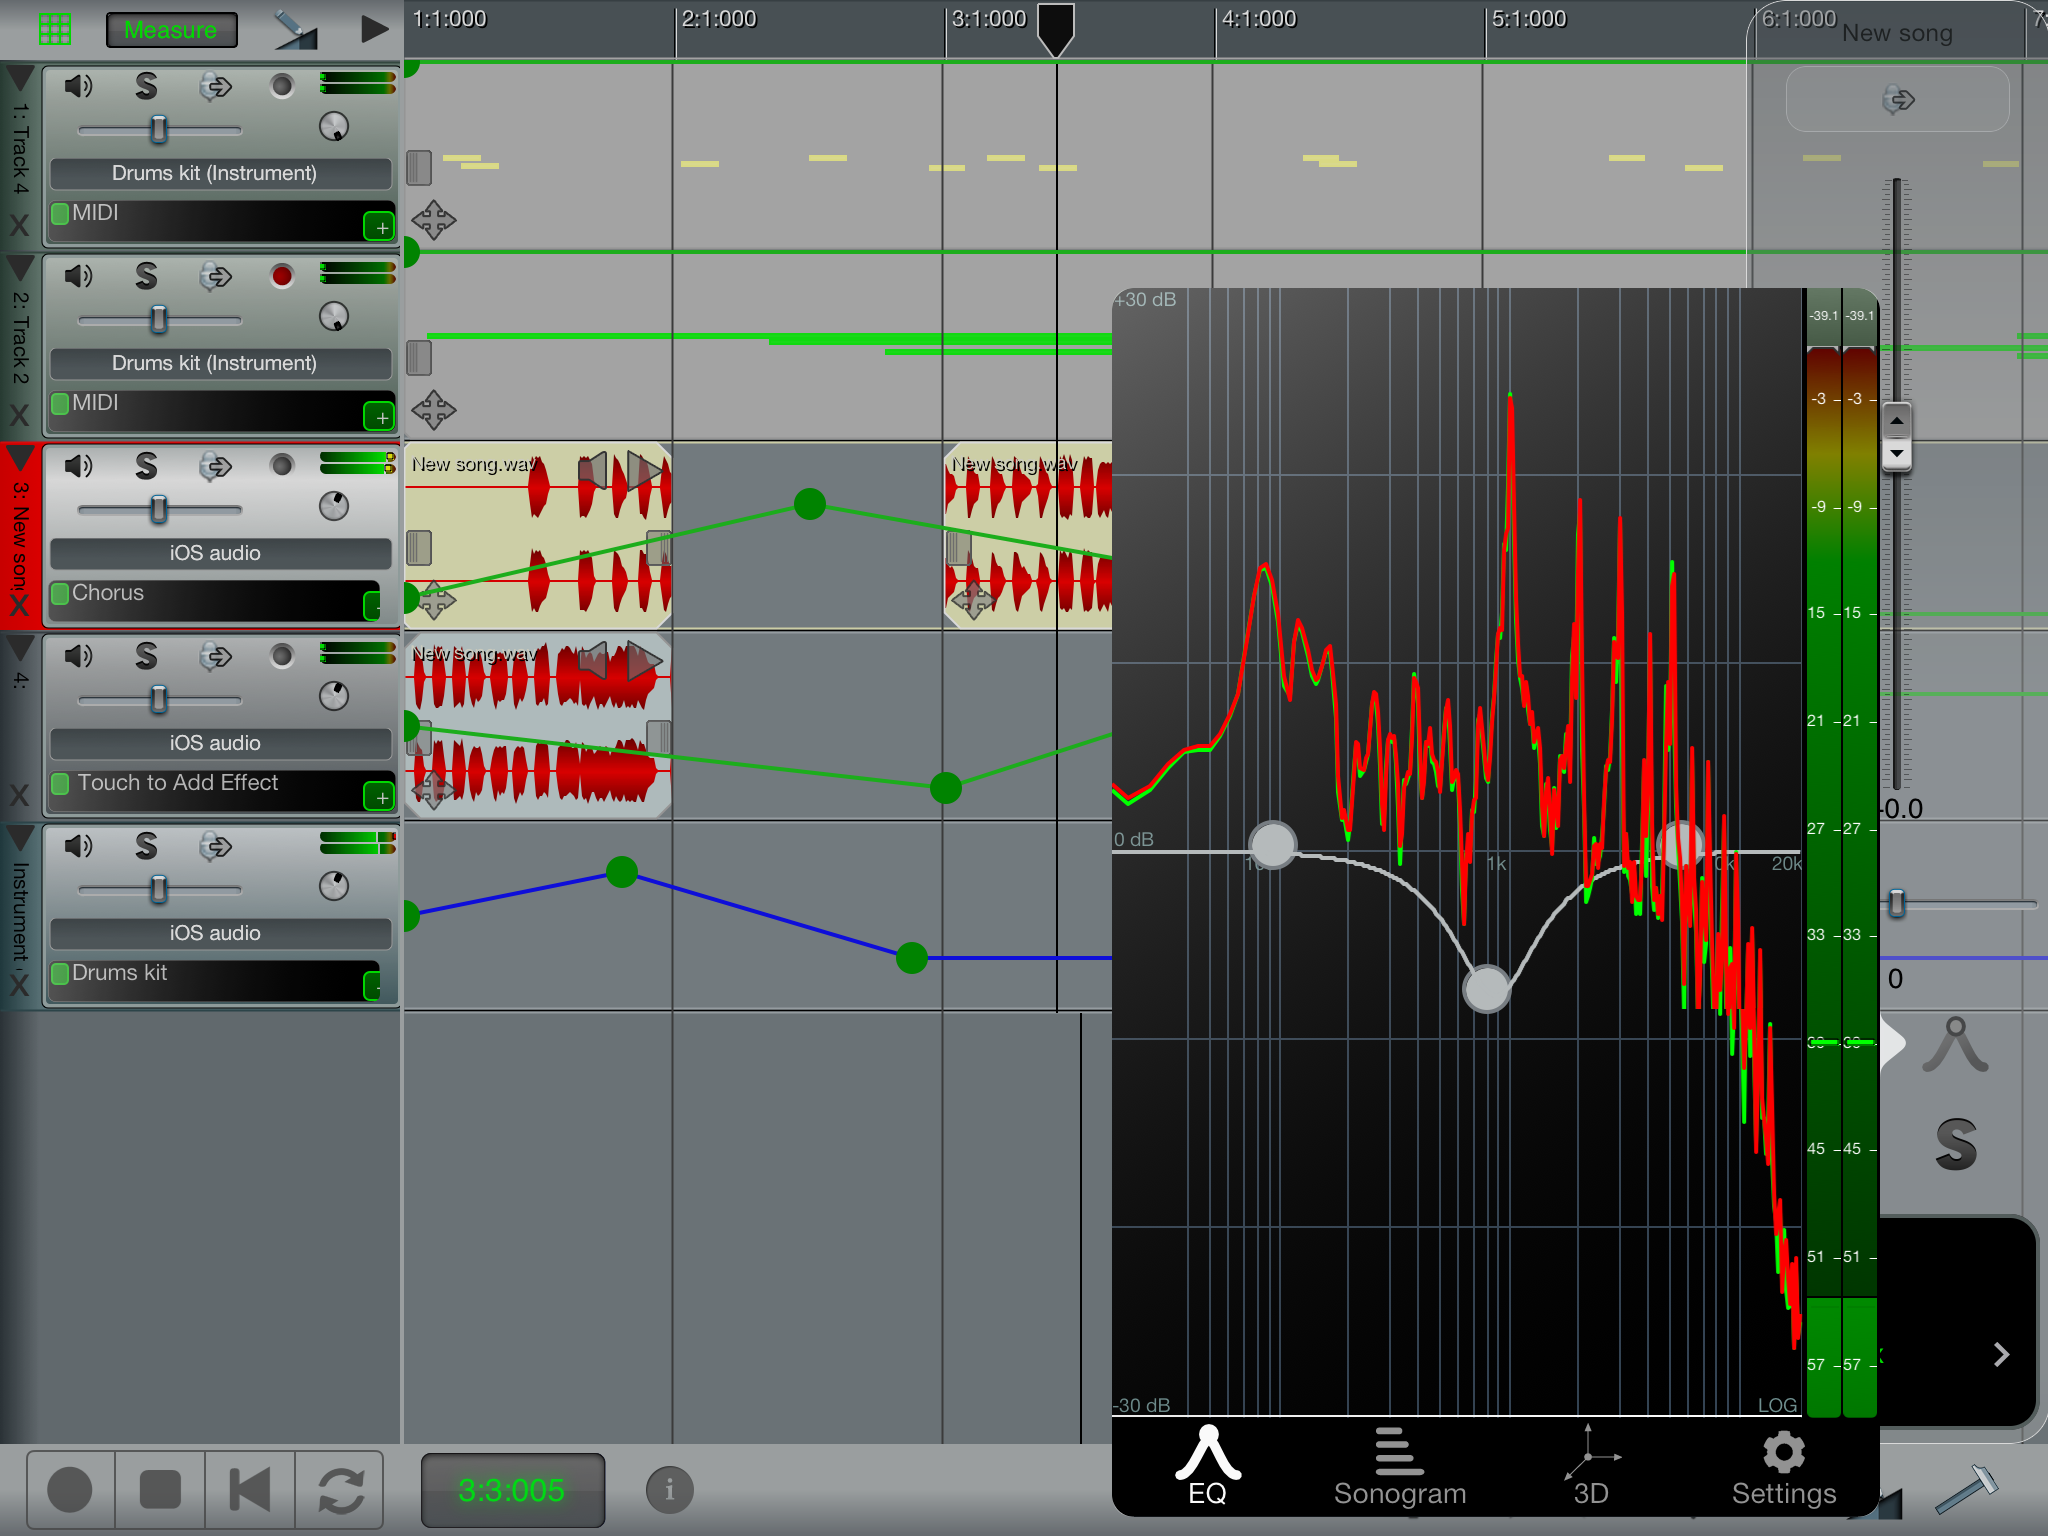 n-Track Studio for iPad screenshot: Eq & Automation